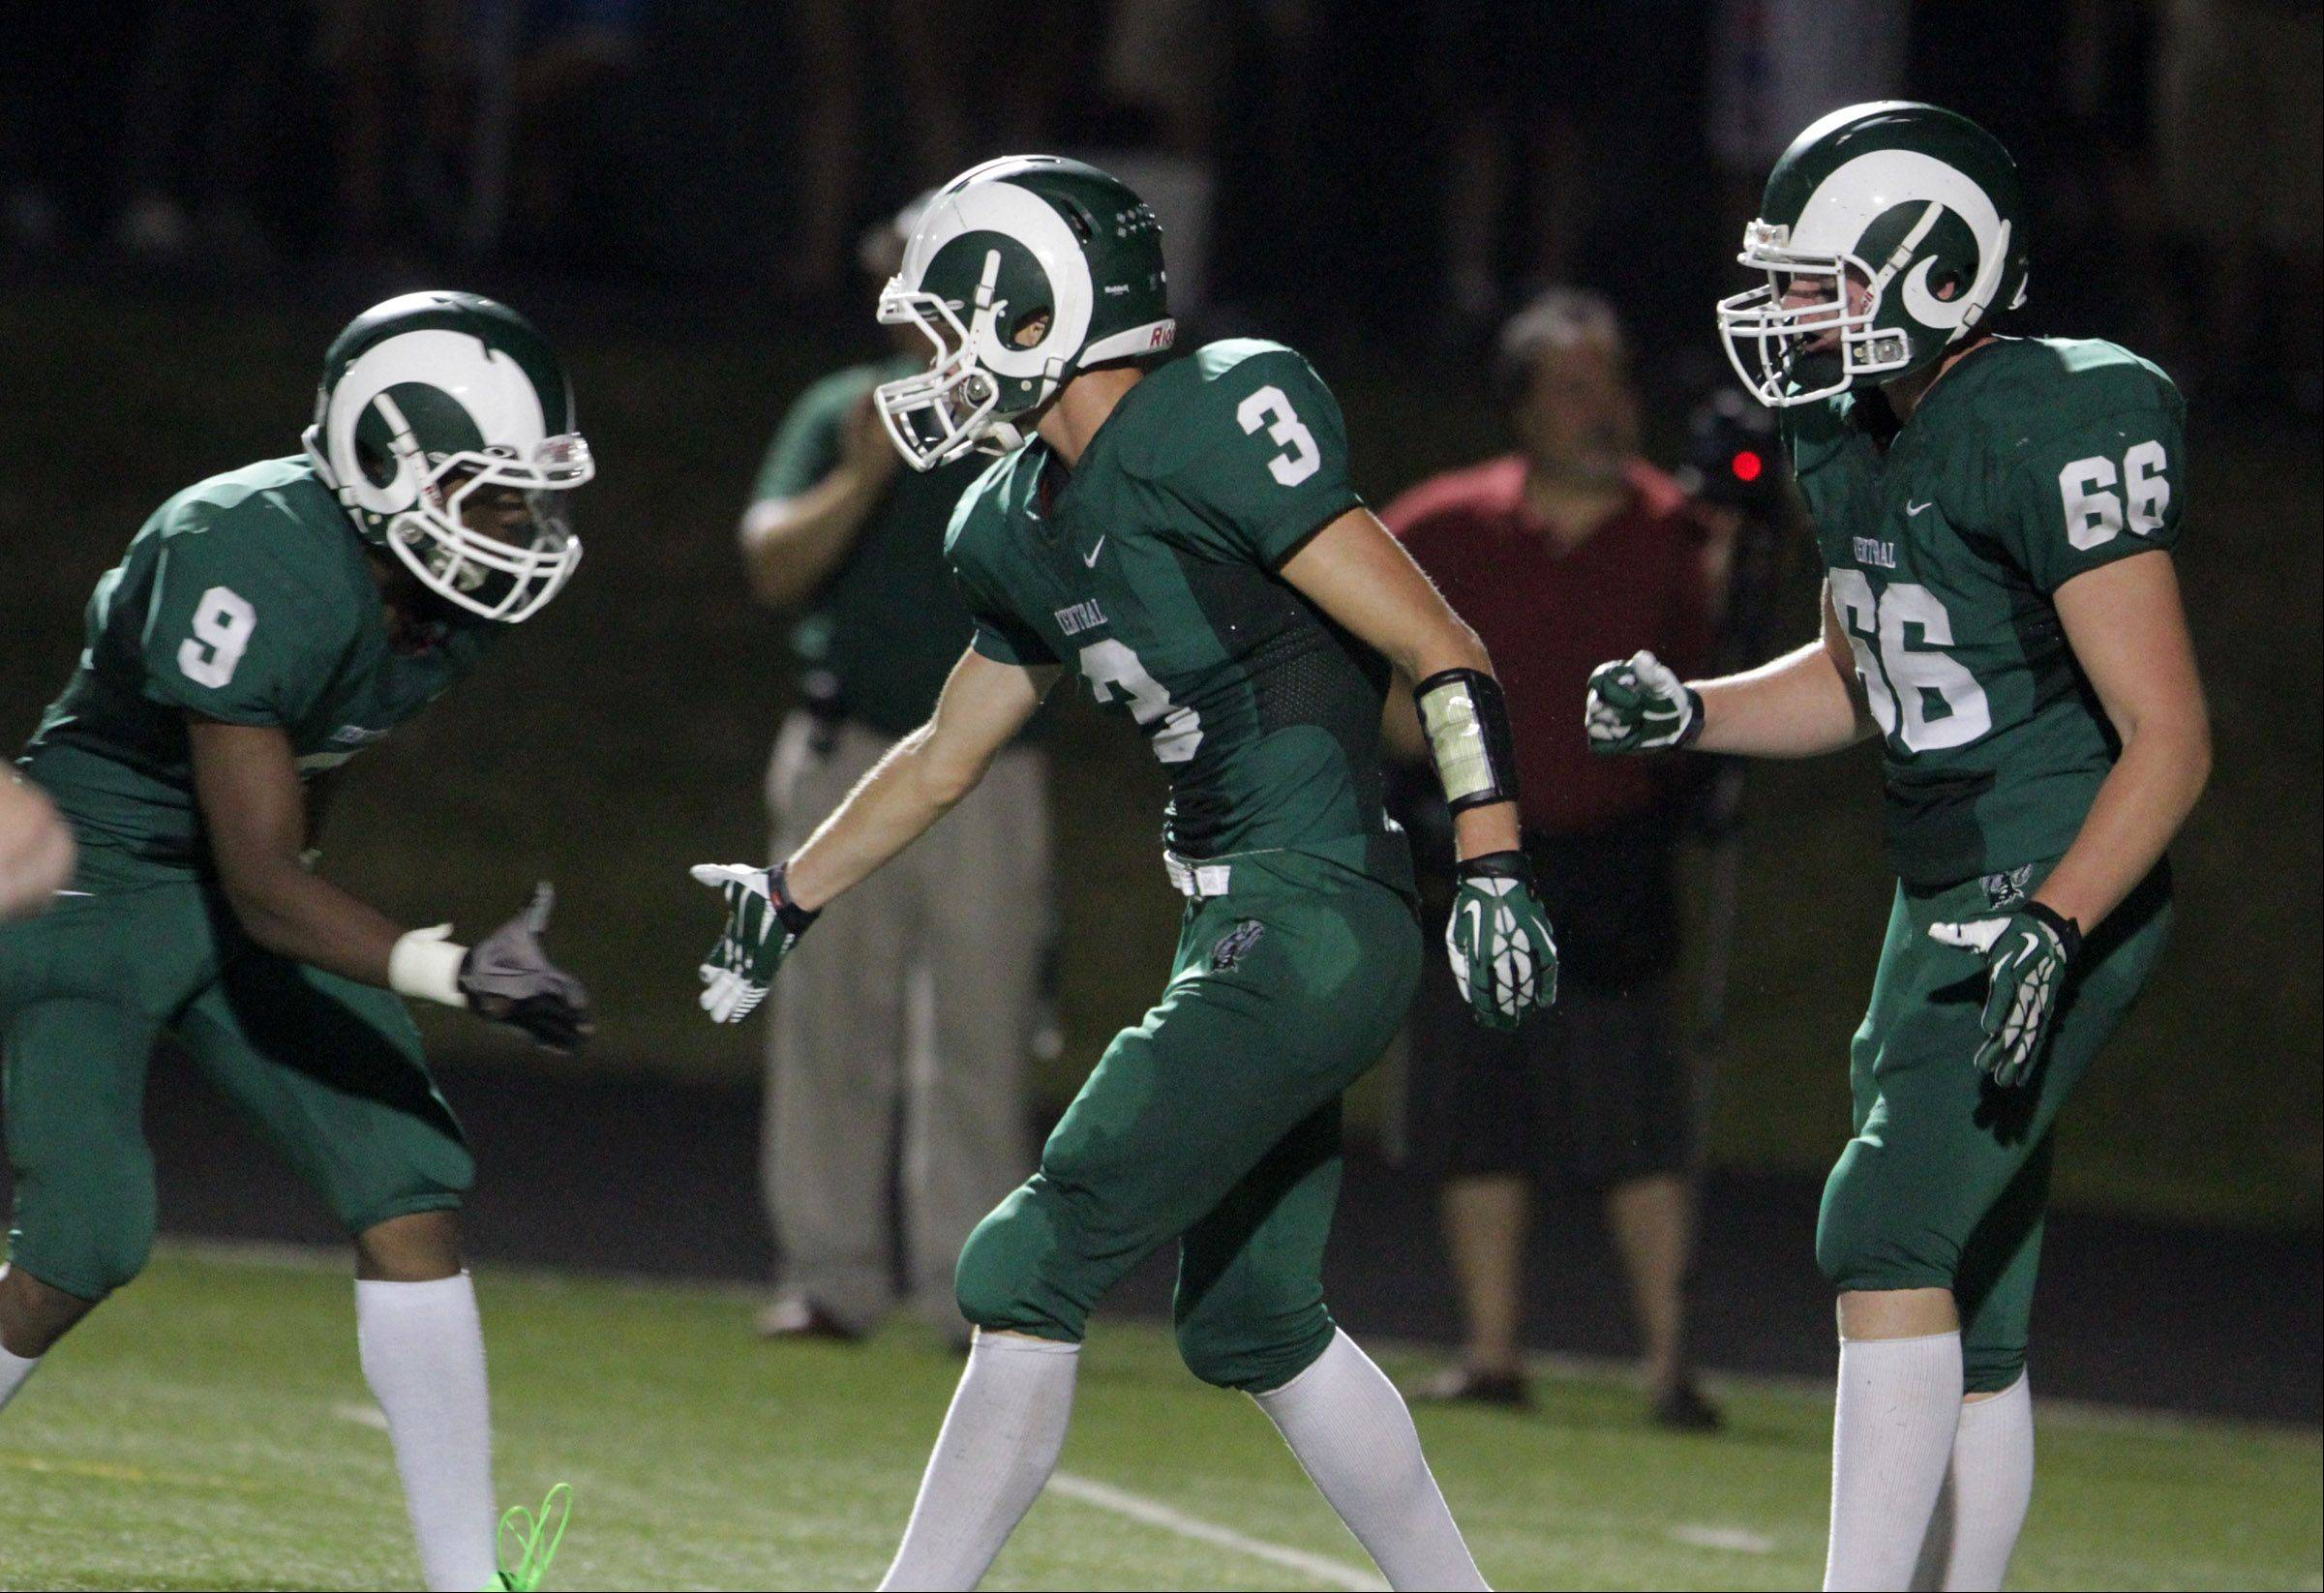 George LeClaire/gleclaire@dailyherald.comGrayslake Central wide-receiver Jacob Vargo gets a hand from Maurice Merrell, left, and Eamon Peterson after scoring a touch down in the first half against Vernon Hills at Grayslake Central on Friday, September 6, 2013.